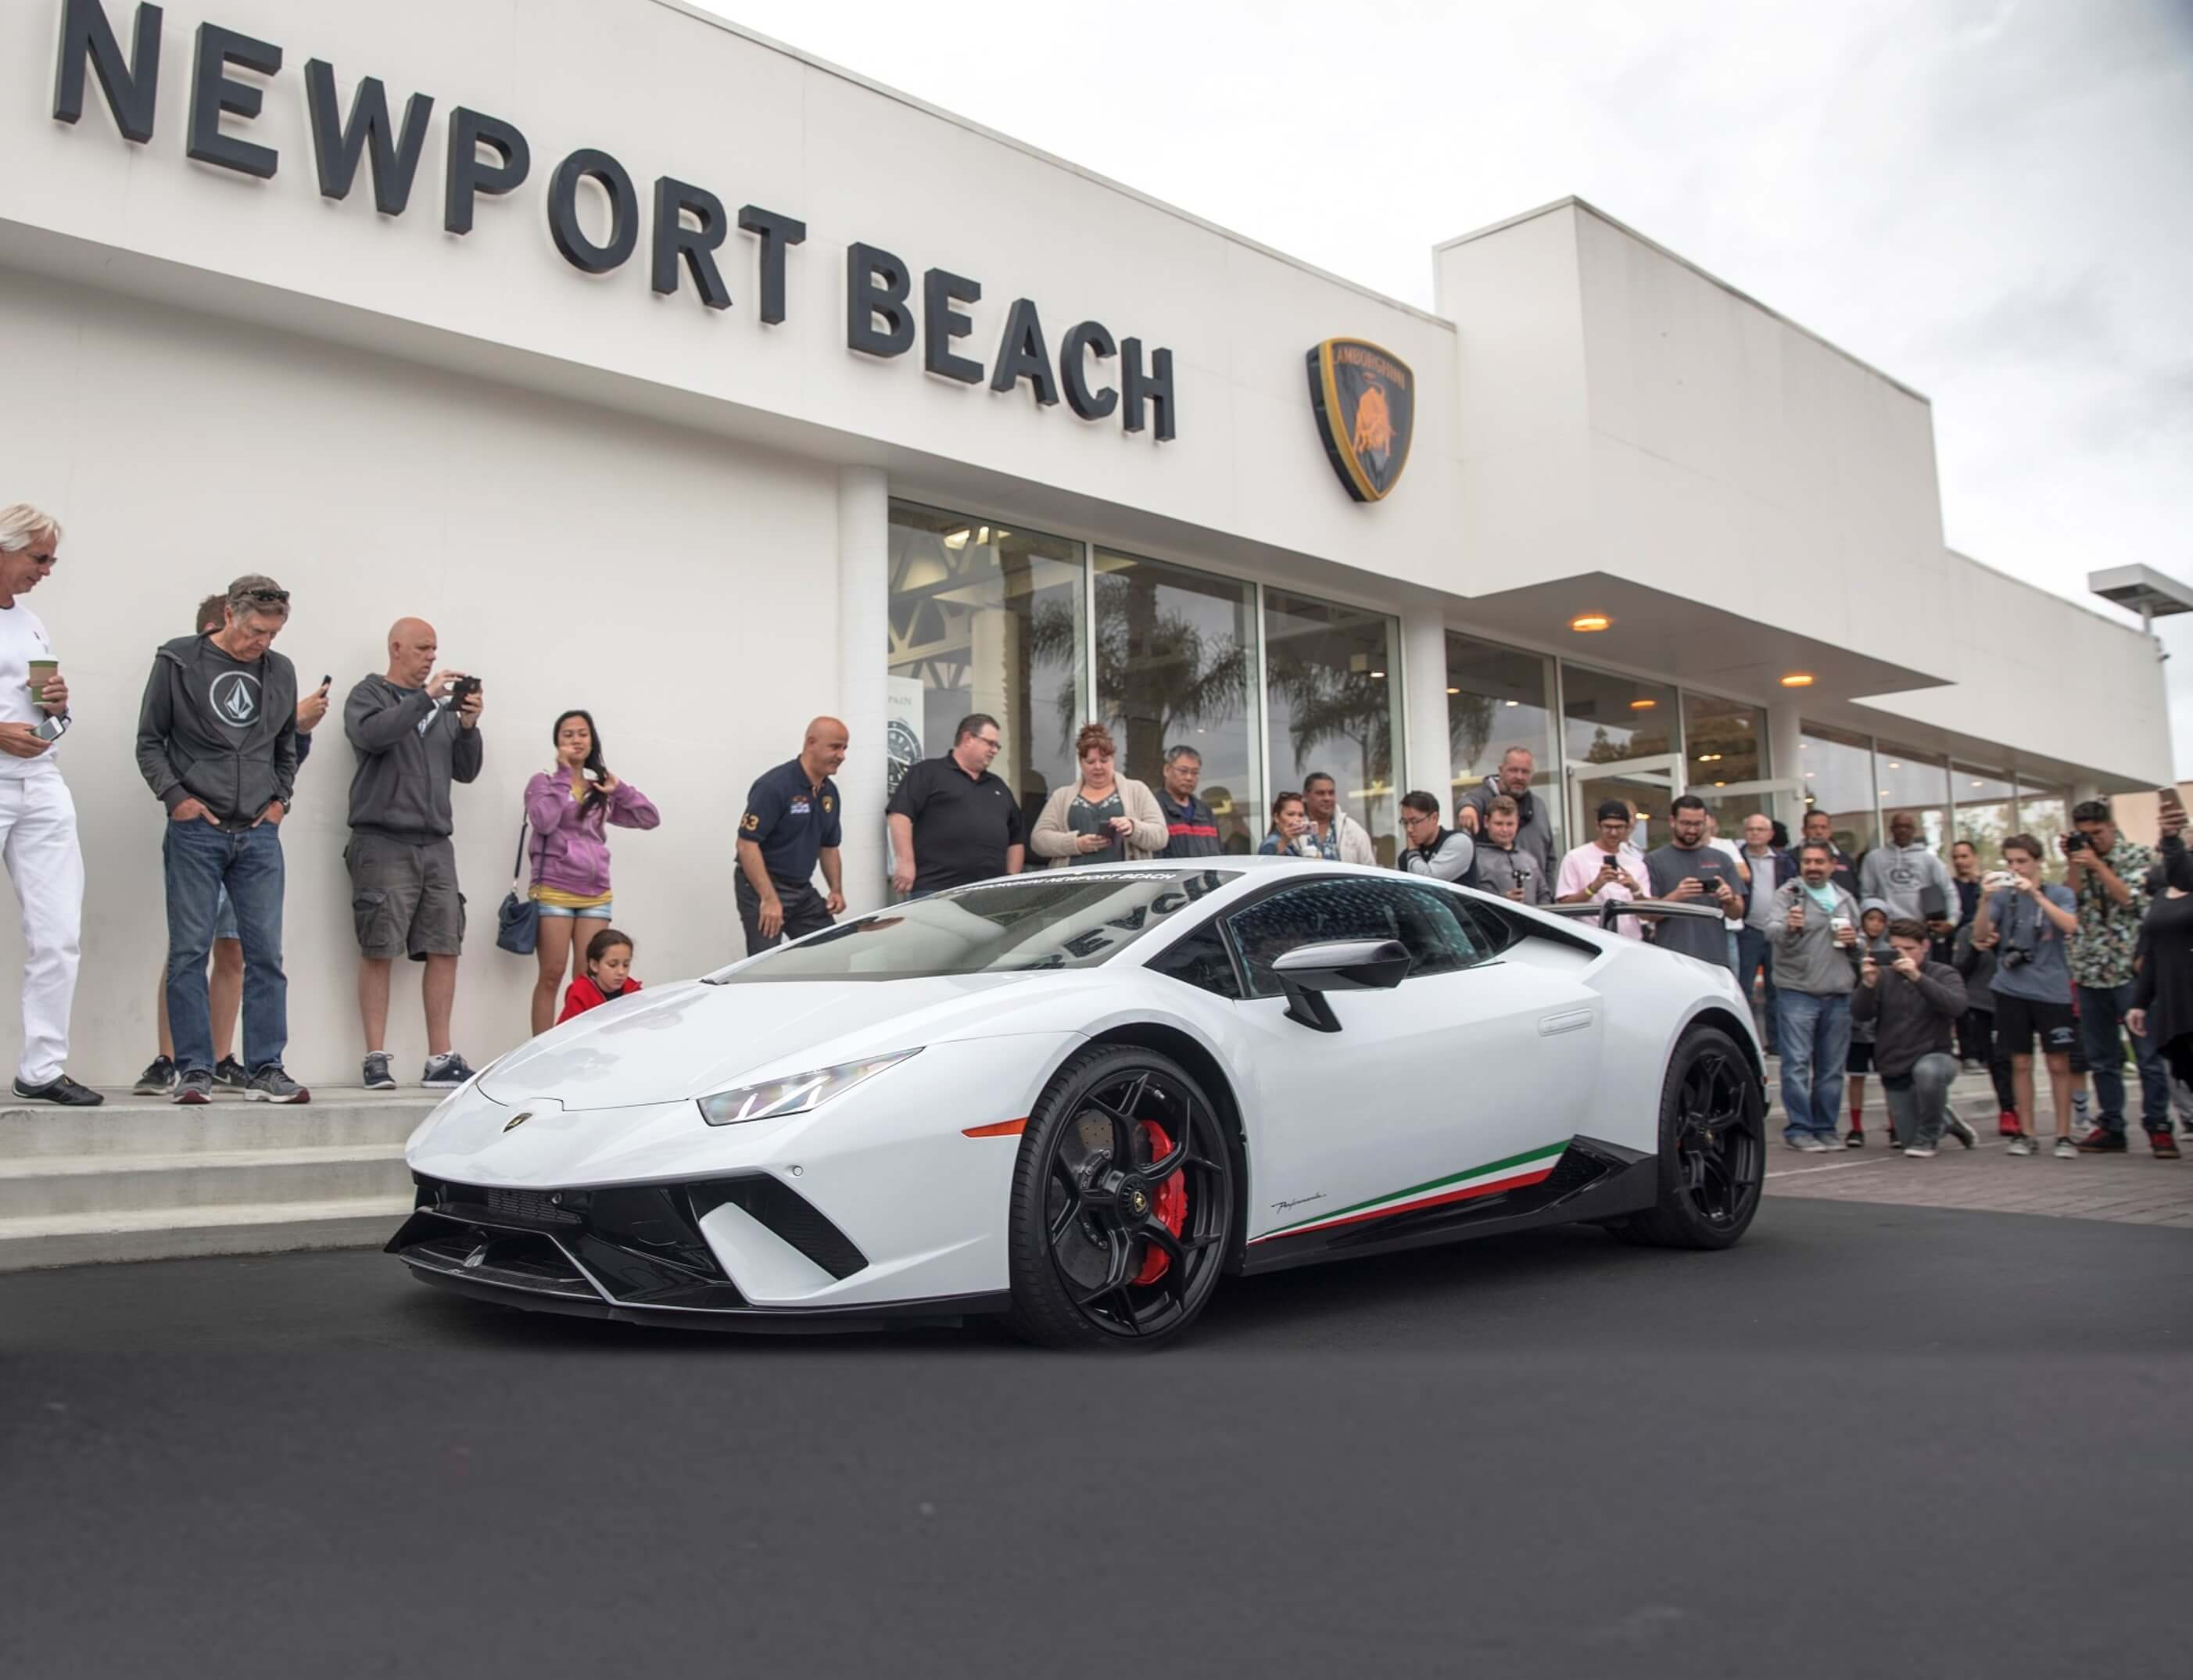 EXCLUSIVE Lamborghini Newport Beach Supercar Show Cars - Lamborghini newport beach car show 2018